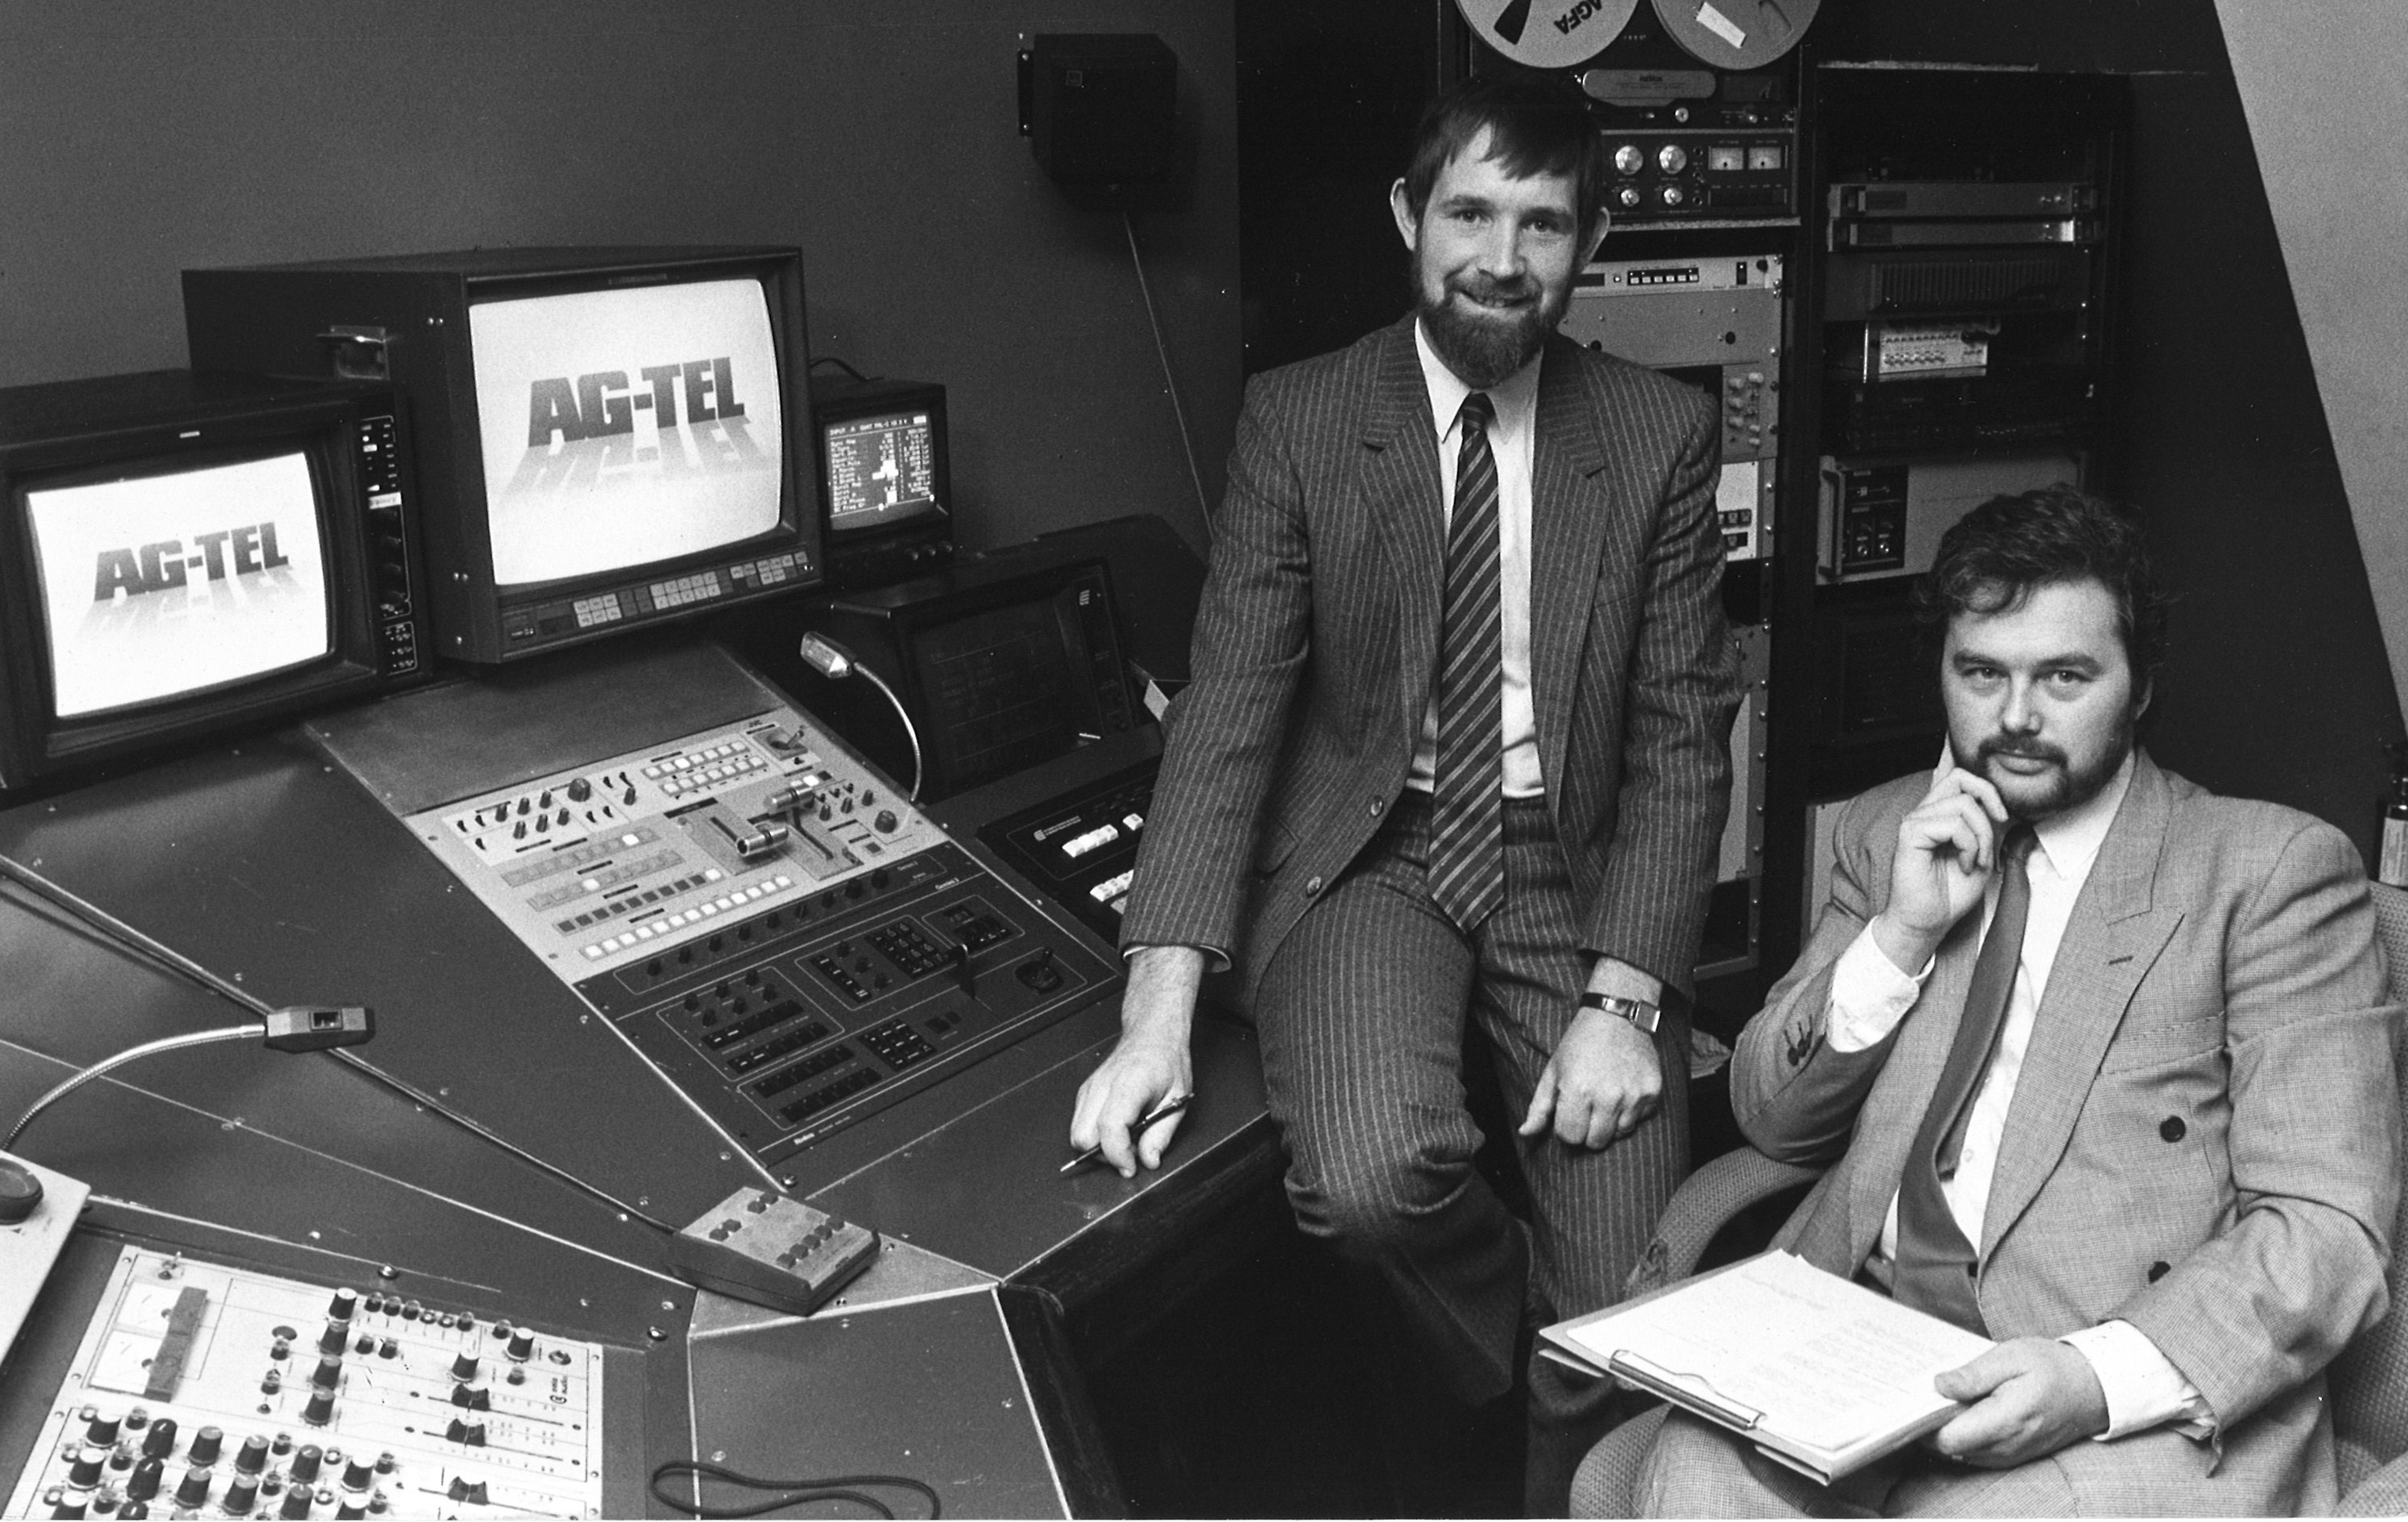 find out more about Agtel and Independent Pictures: A Trip Down Memory Lane